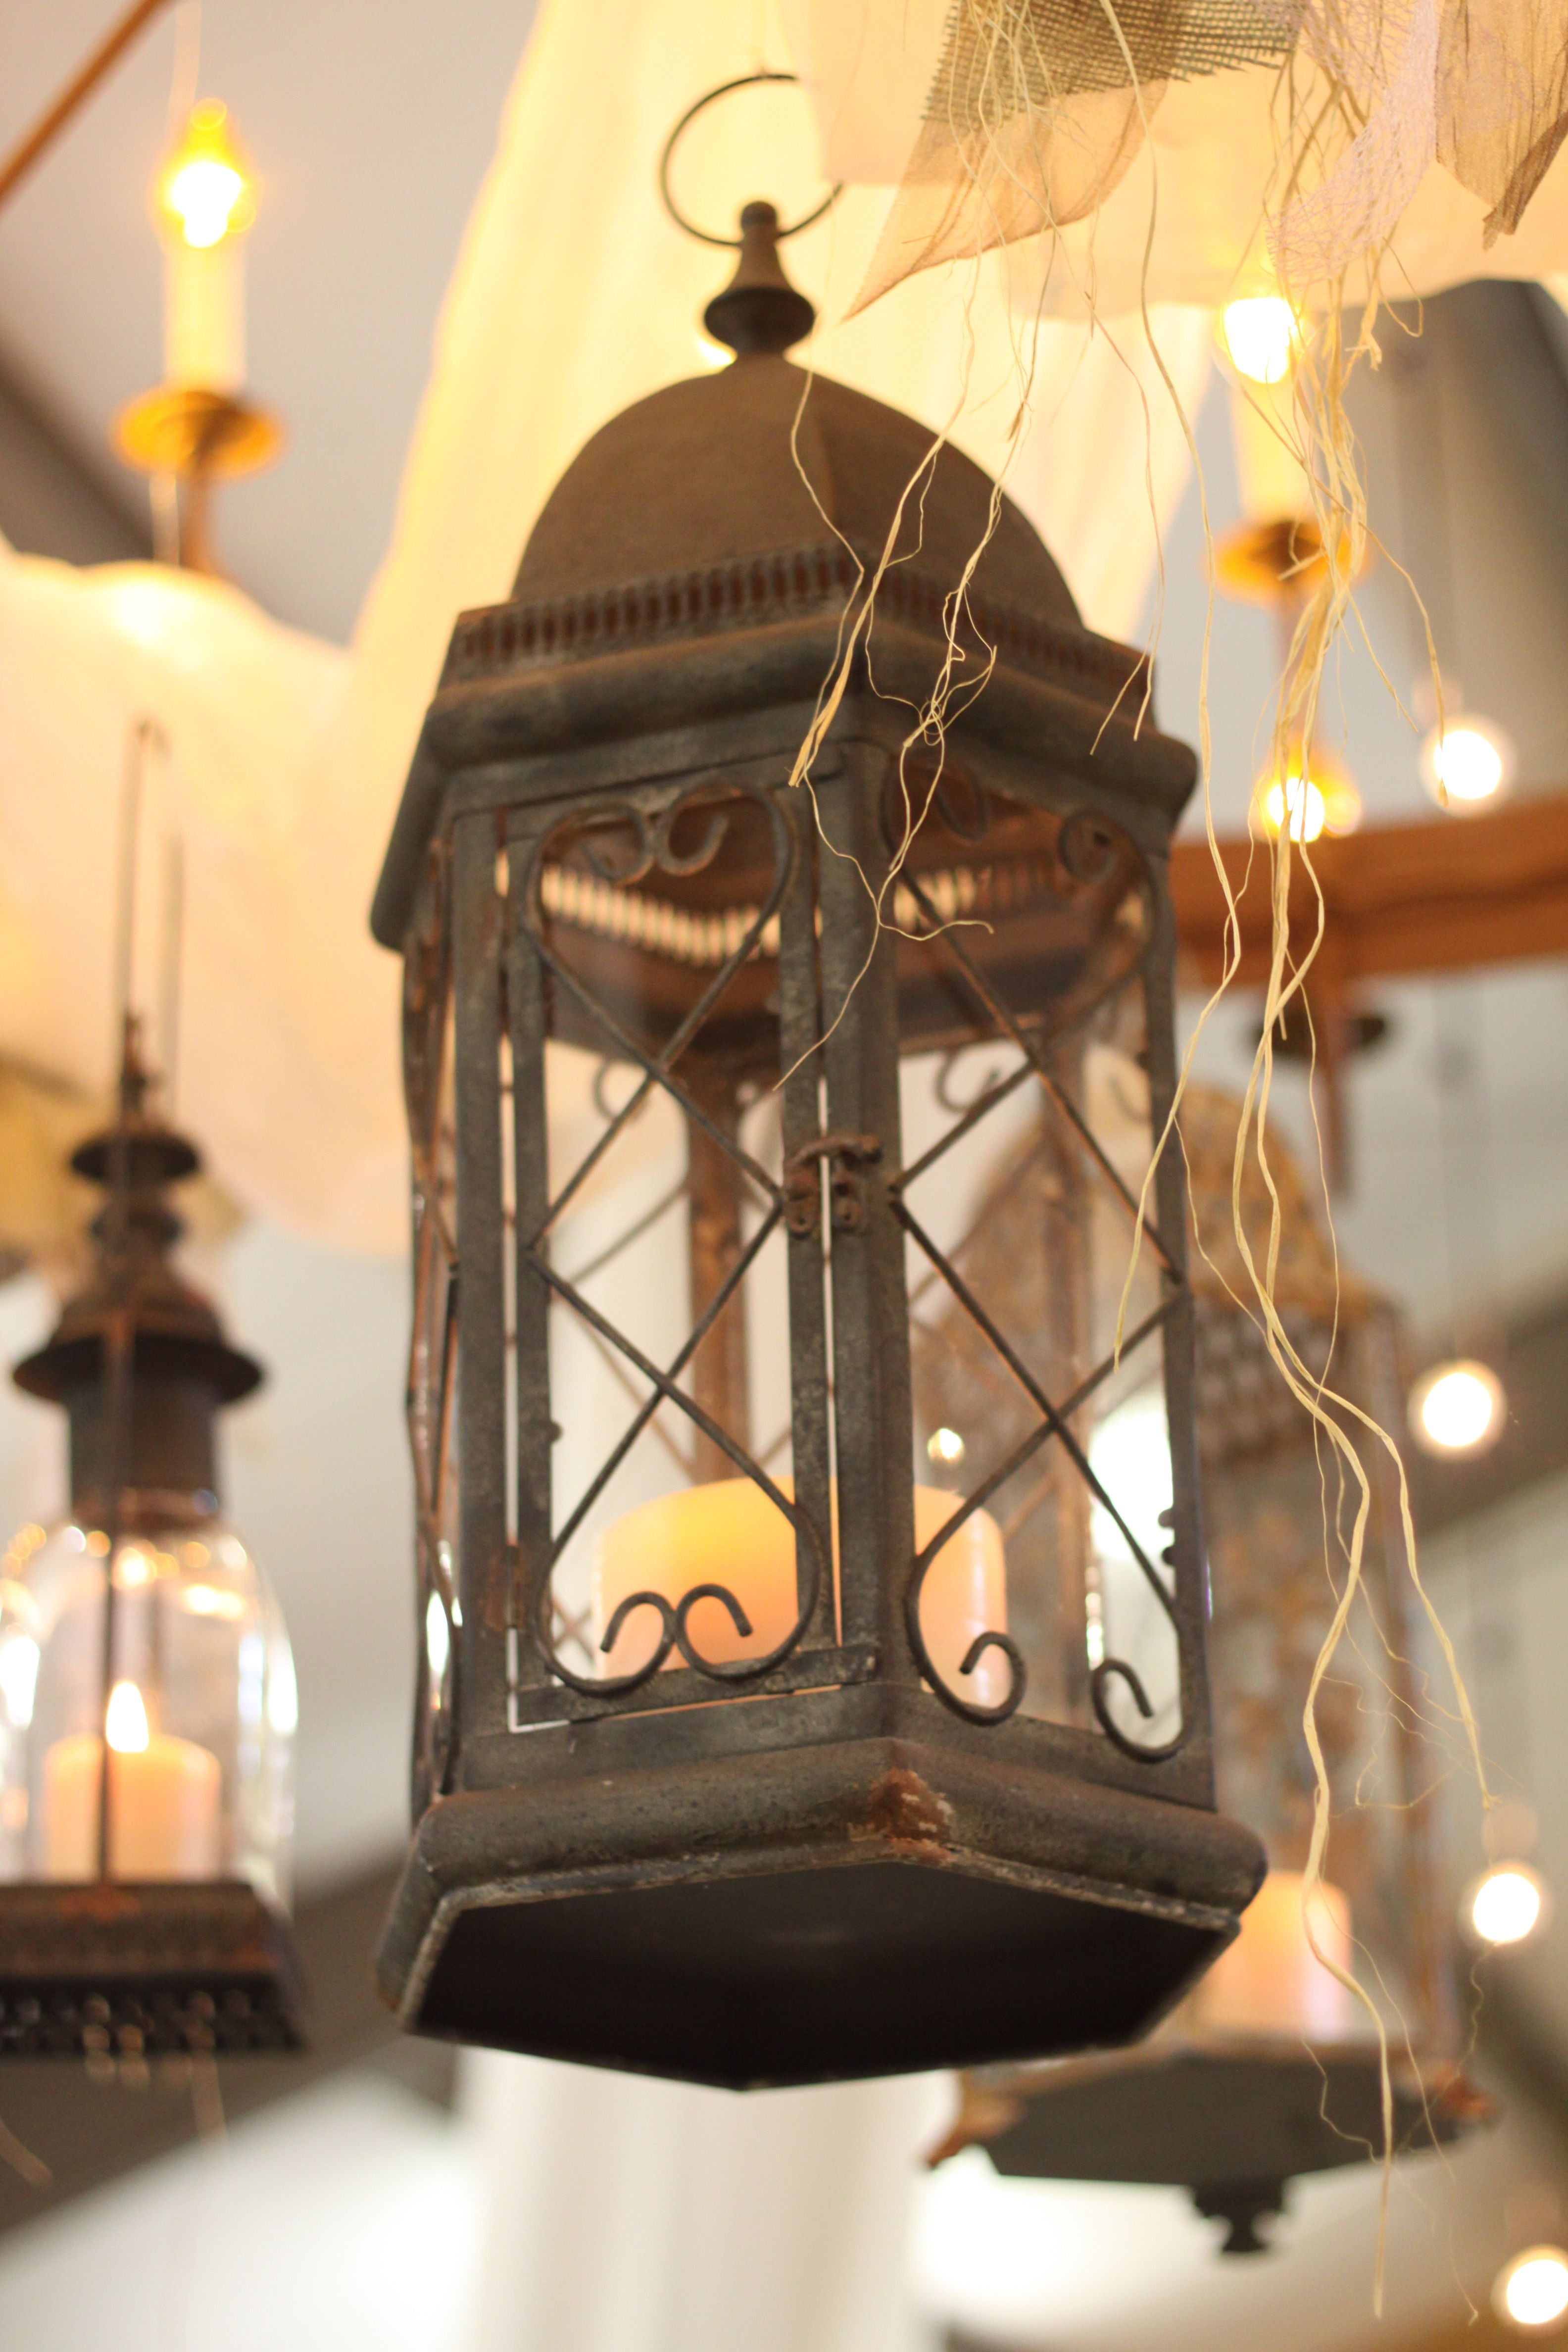 Old Lanterns Were A Beautiful Touch Candle Lanterns Old